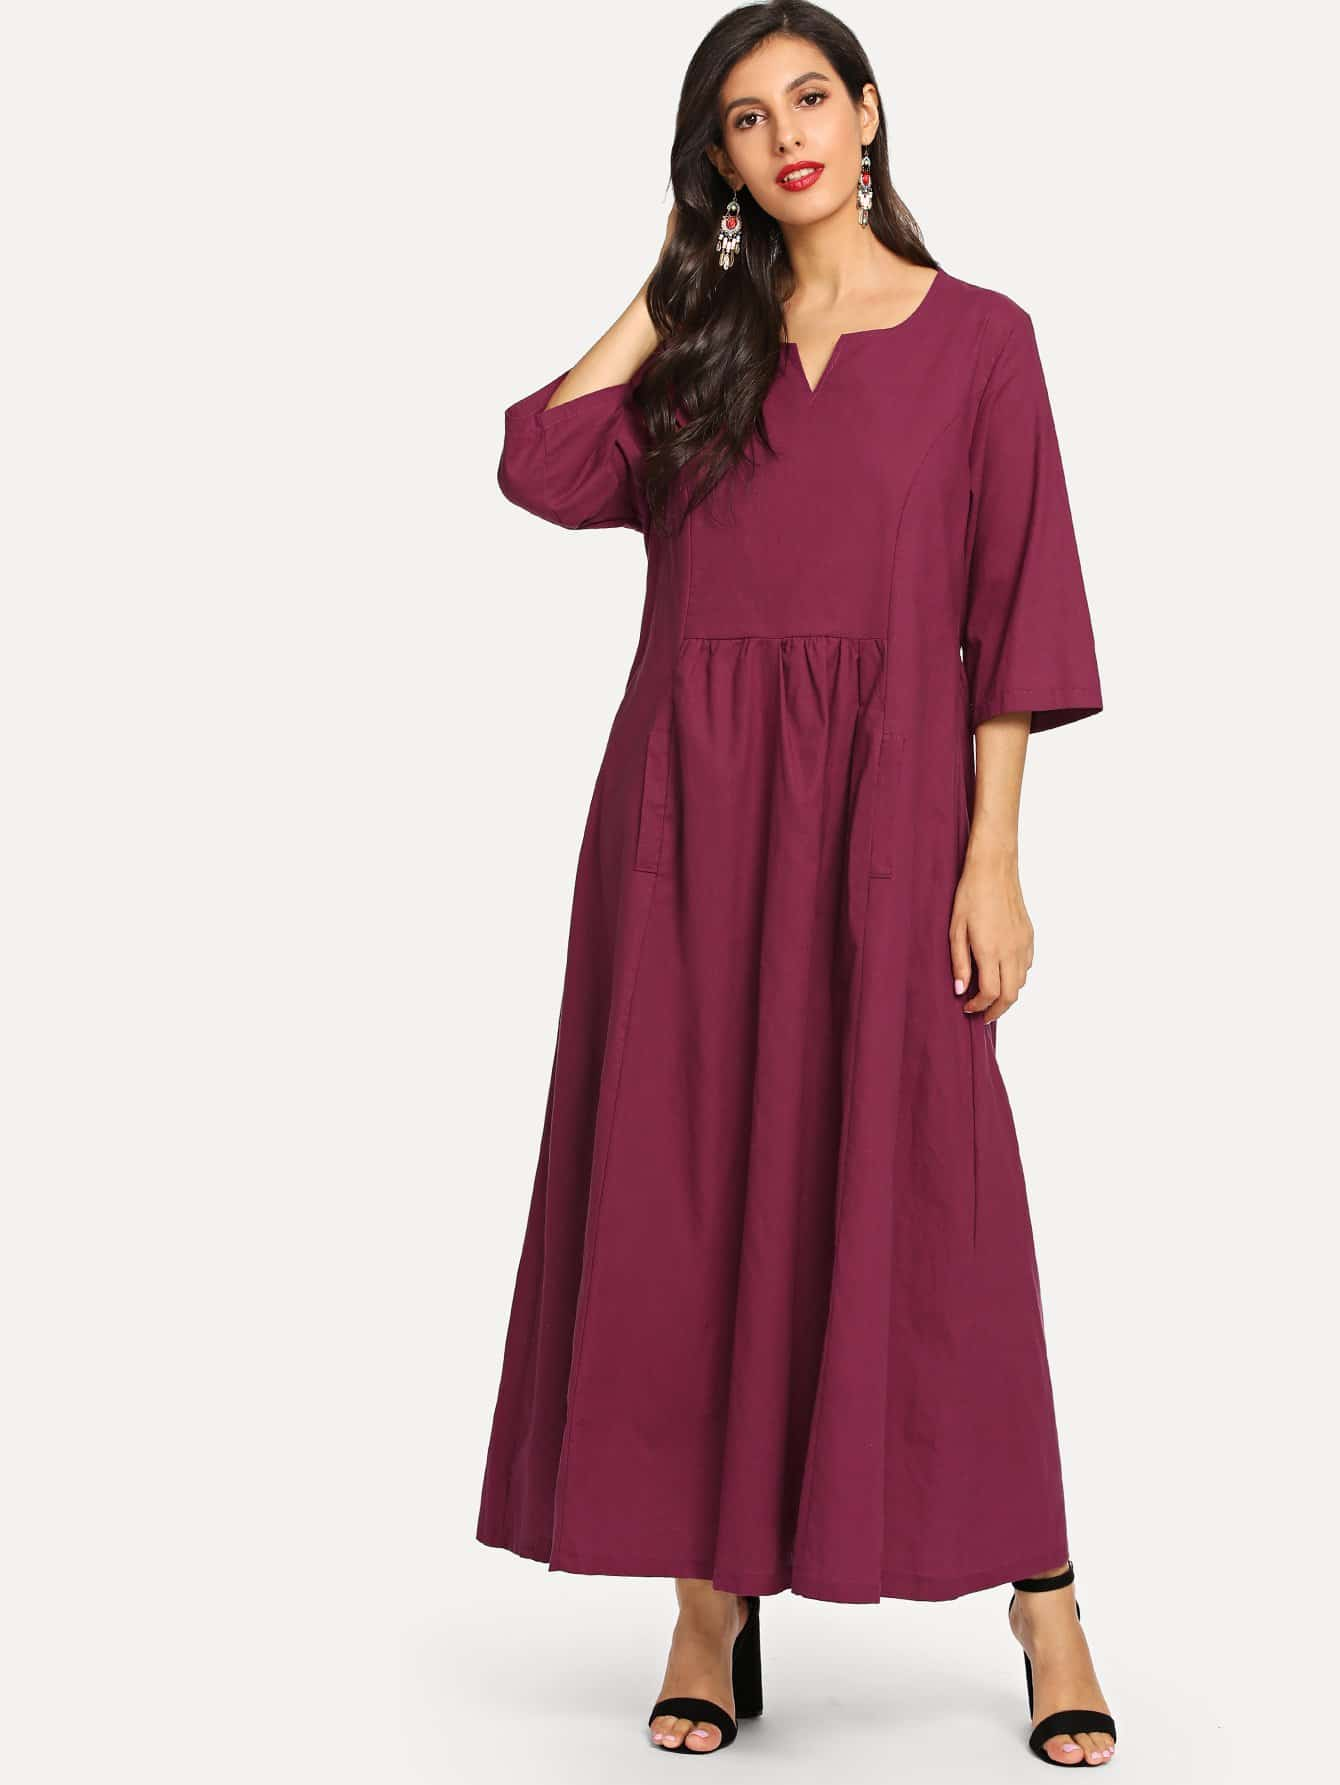 V Neck Half Sleeve Dress